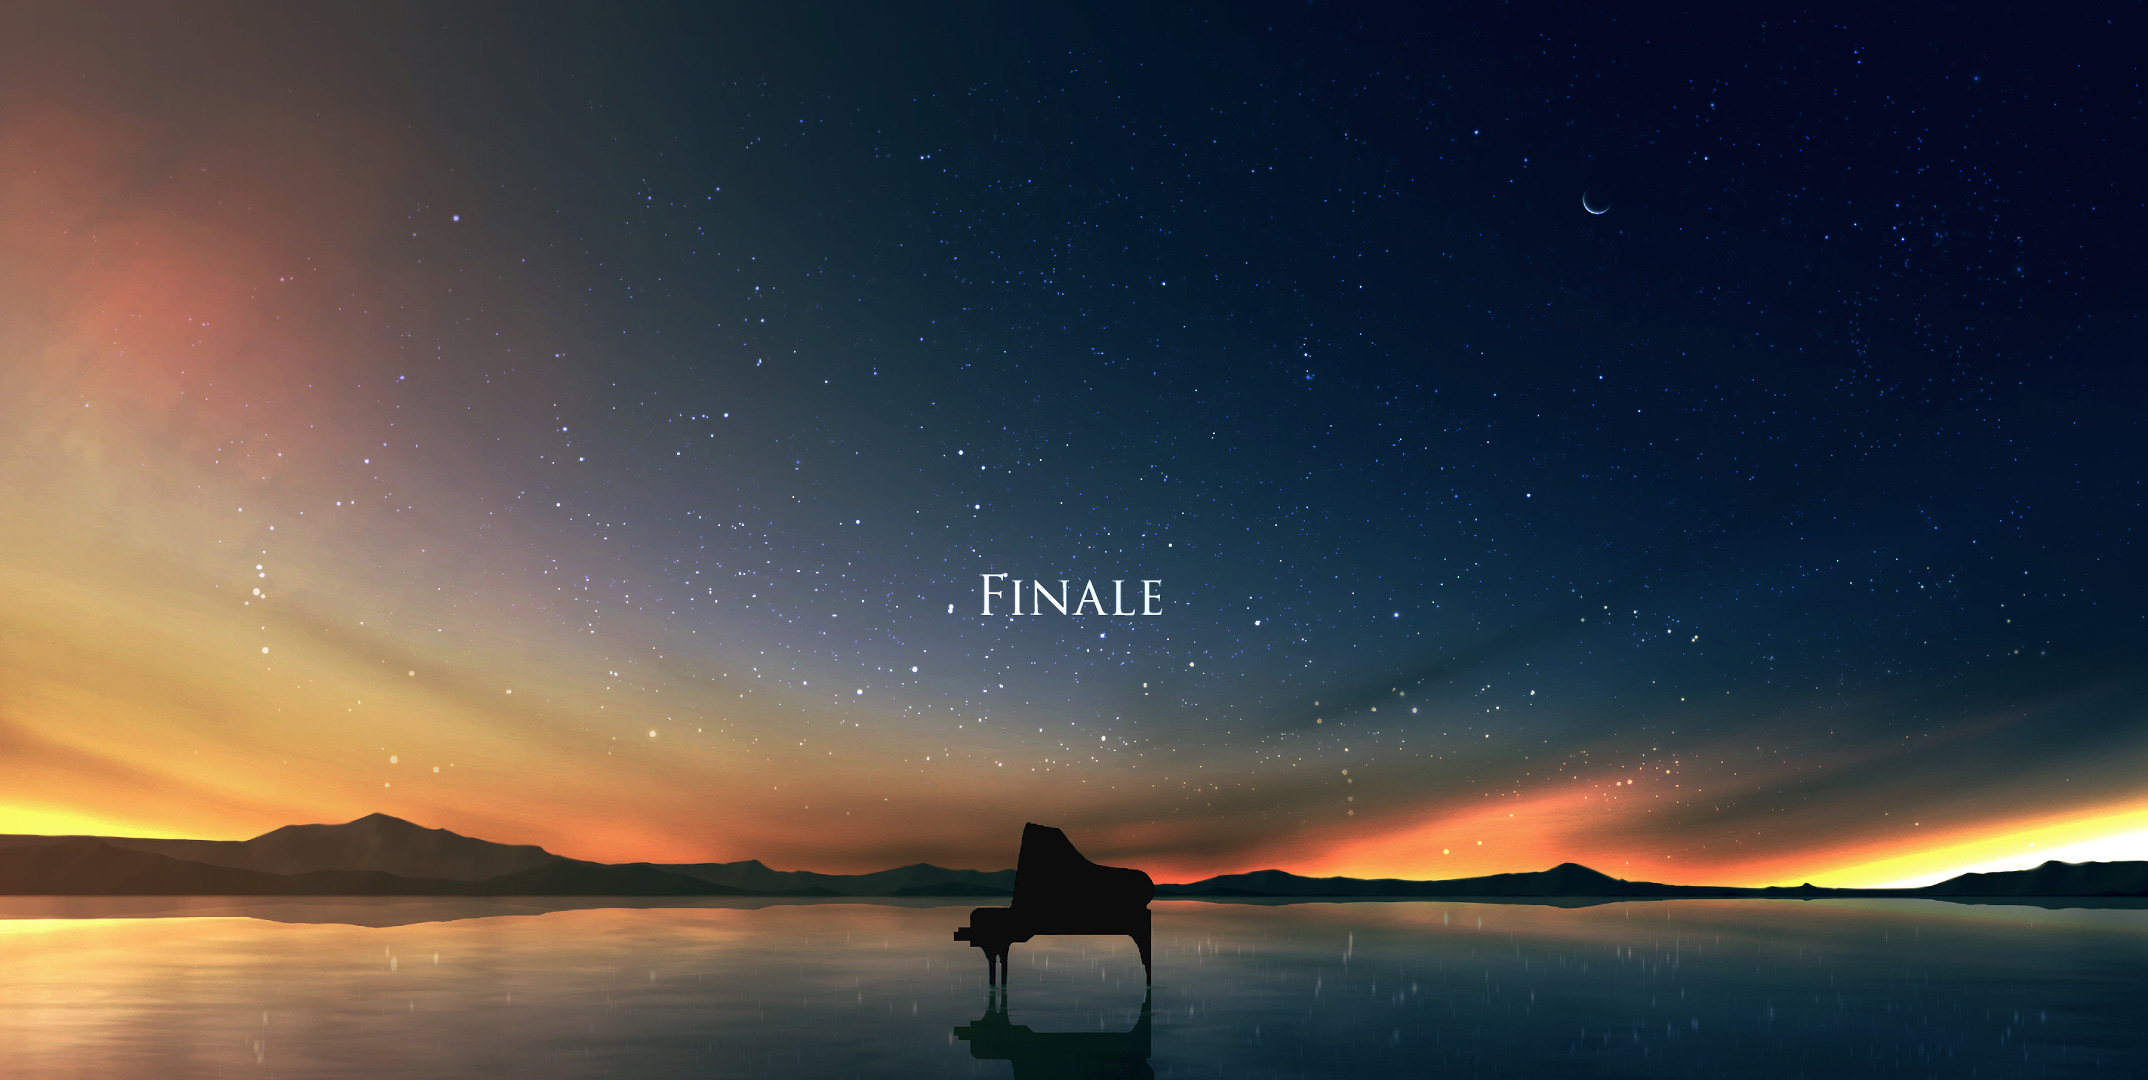 Anime finale hd anime 4k wallpapers images backgrounds - Anime 4k hd wallpapers ...